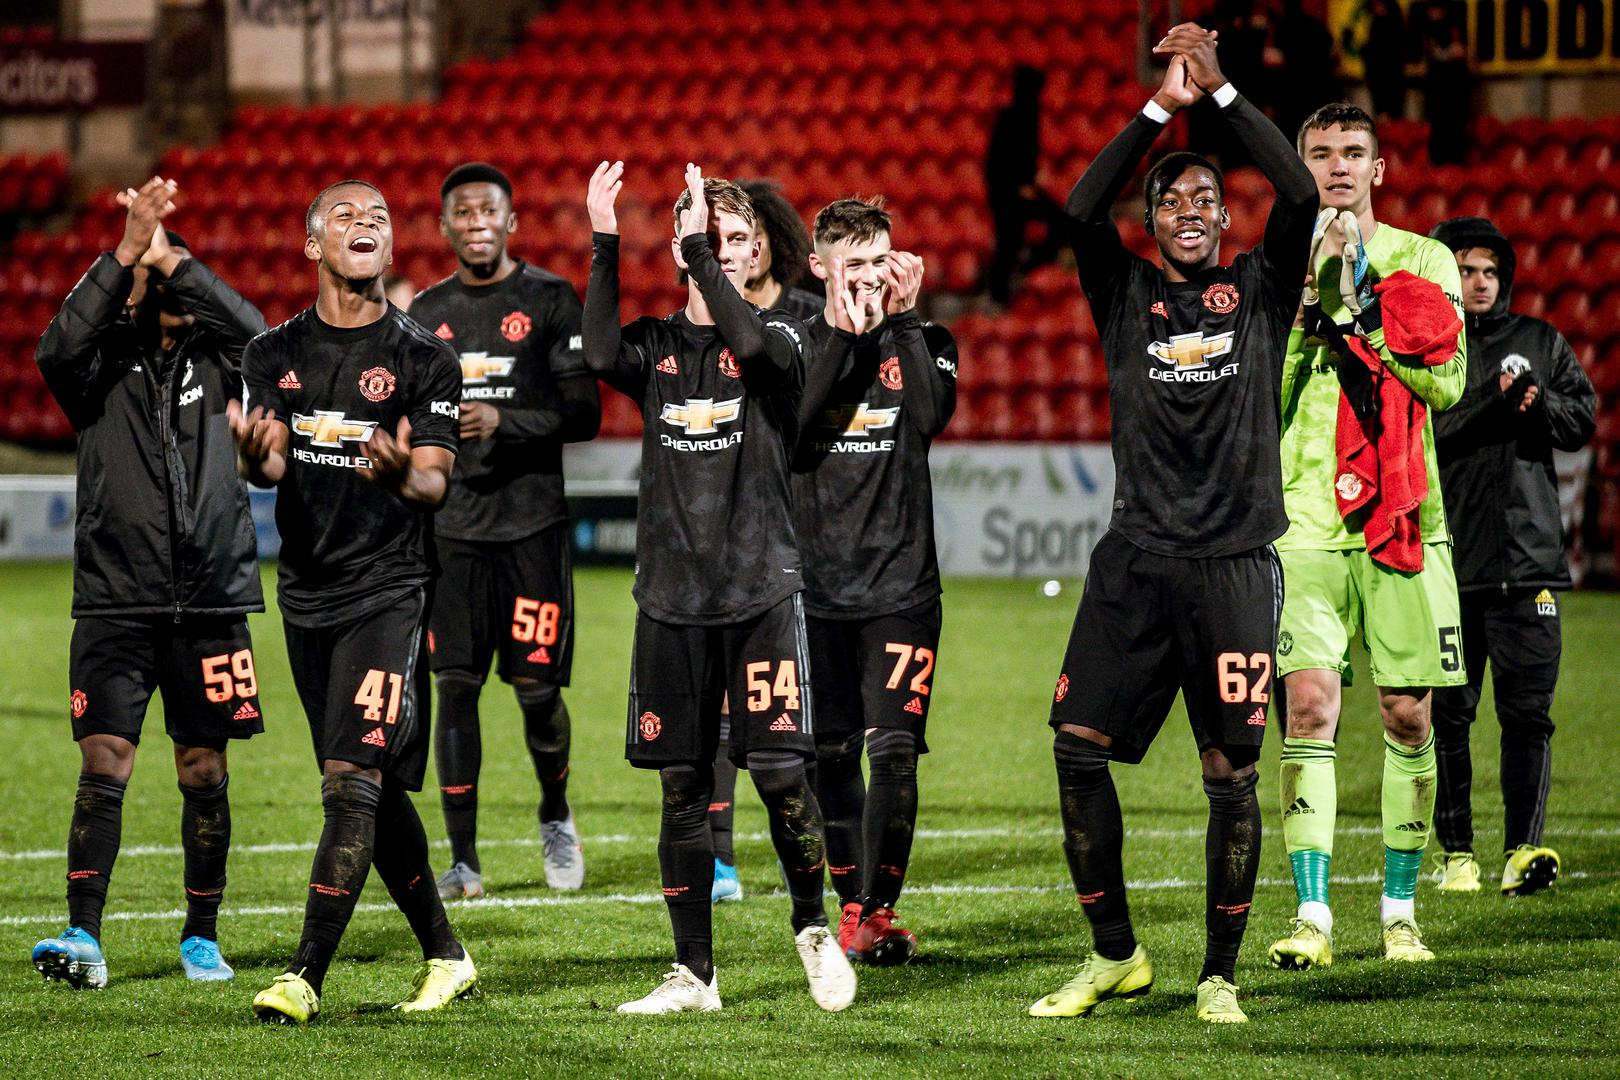 United's Under-23s celebrate a win at Doncaster.,